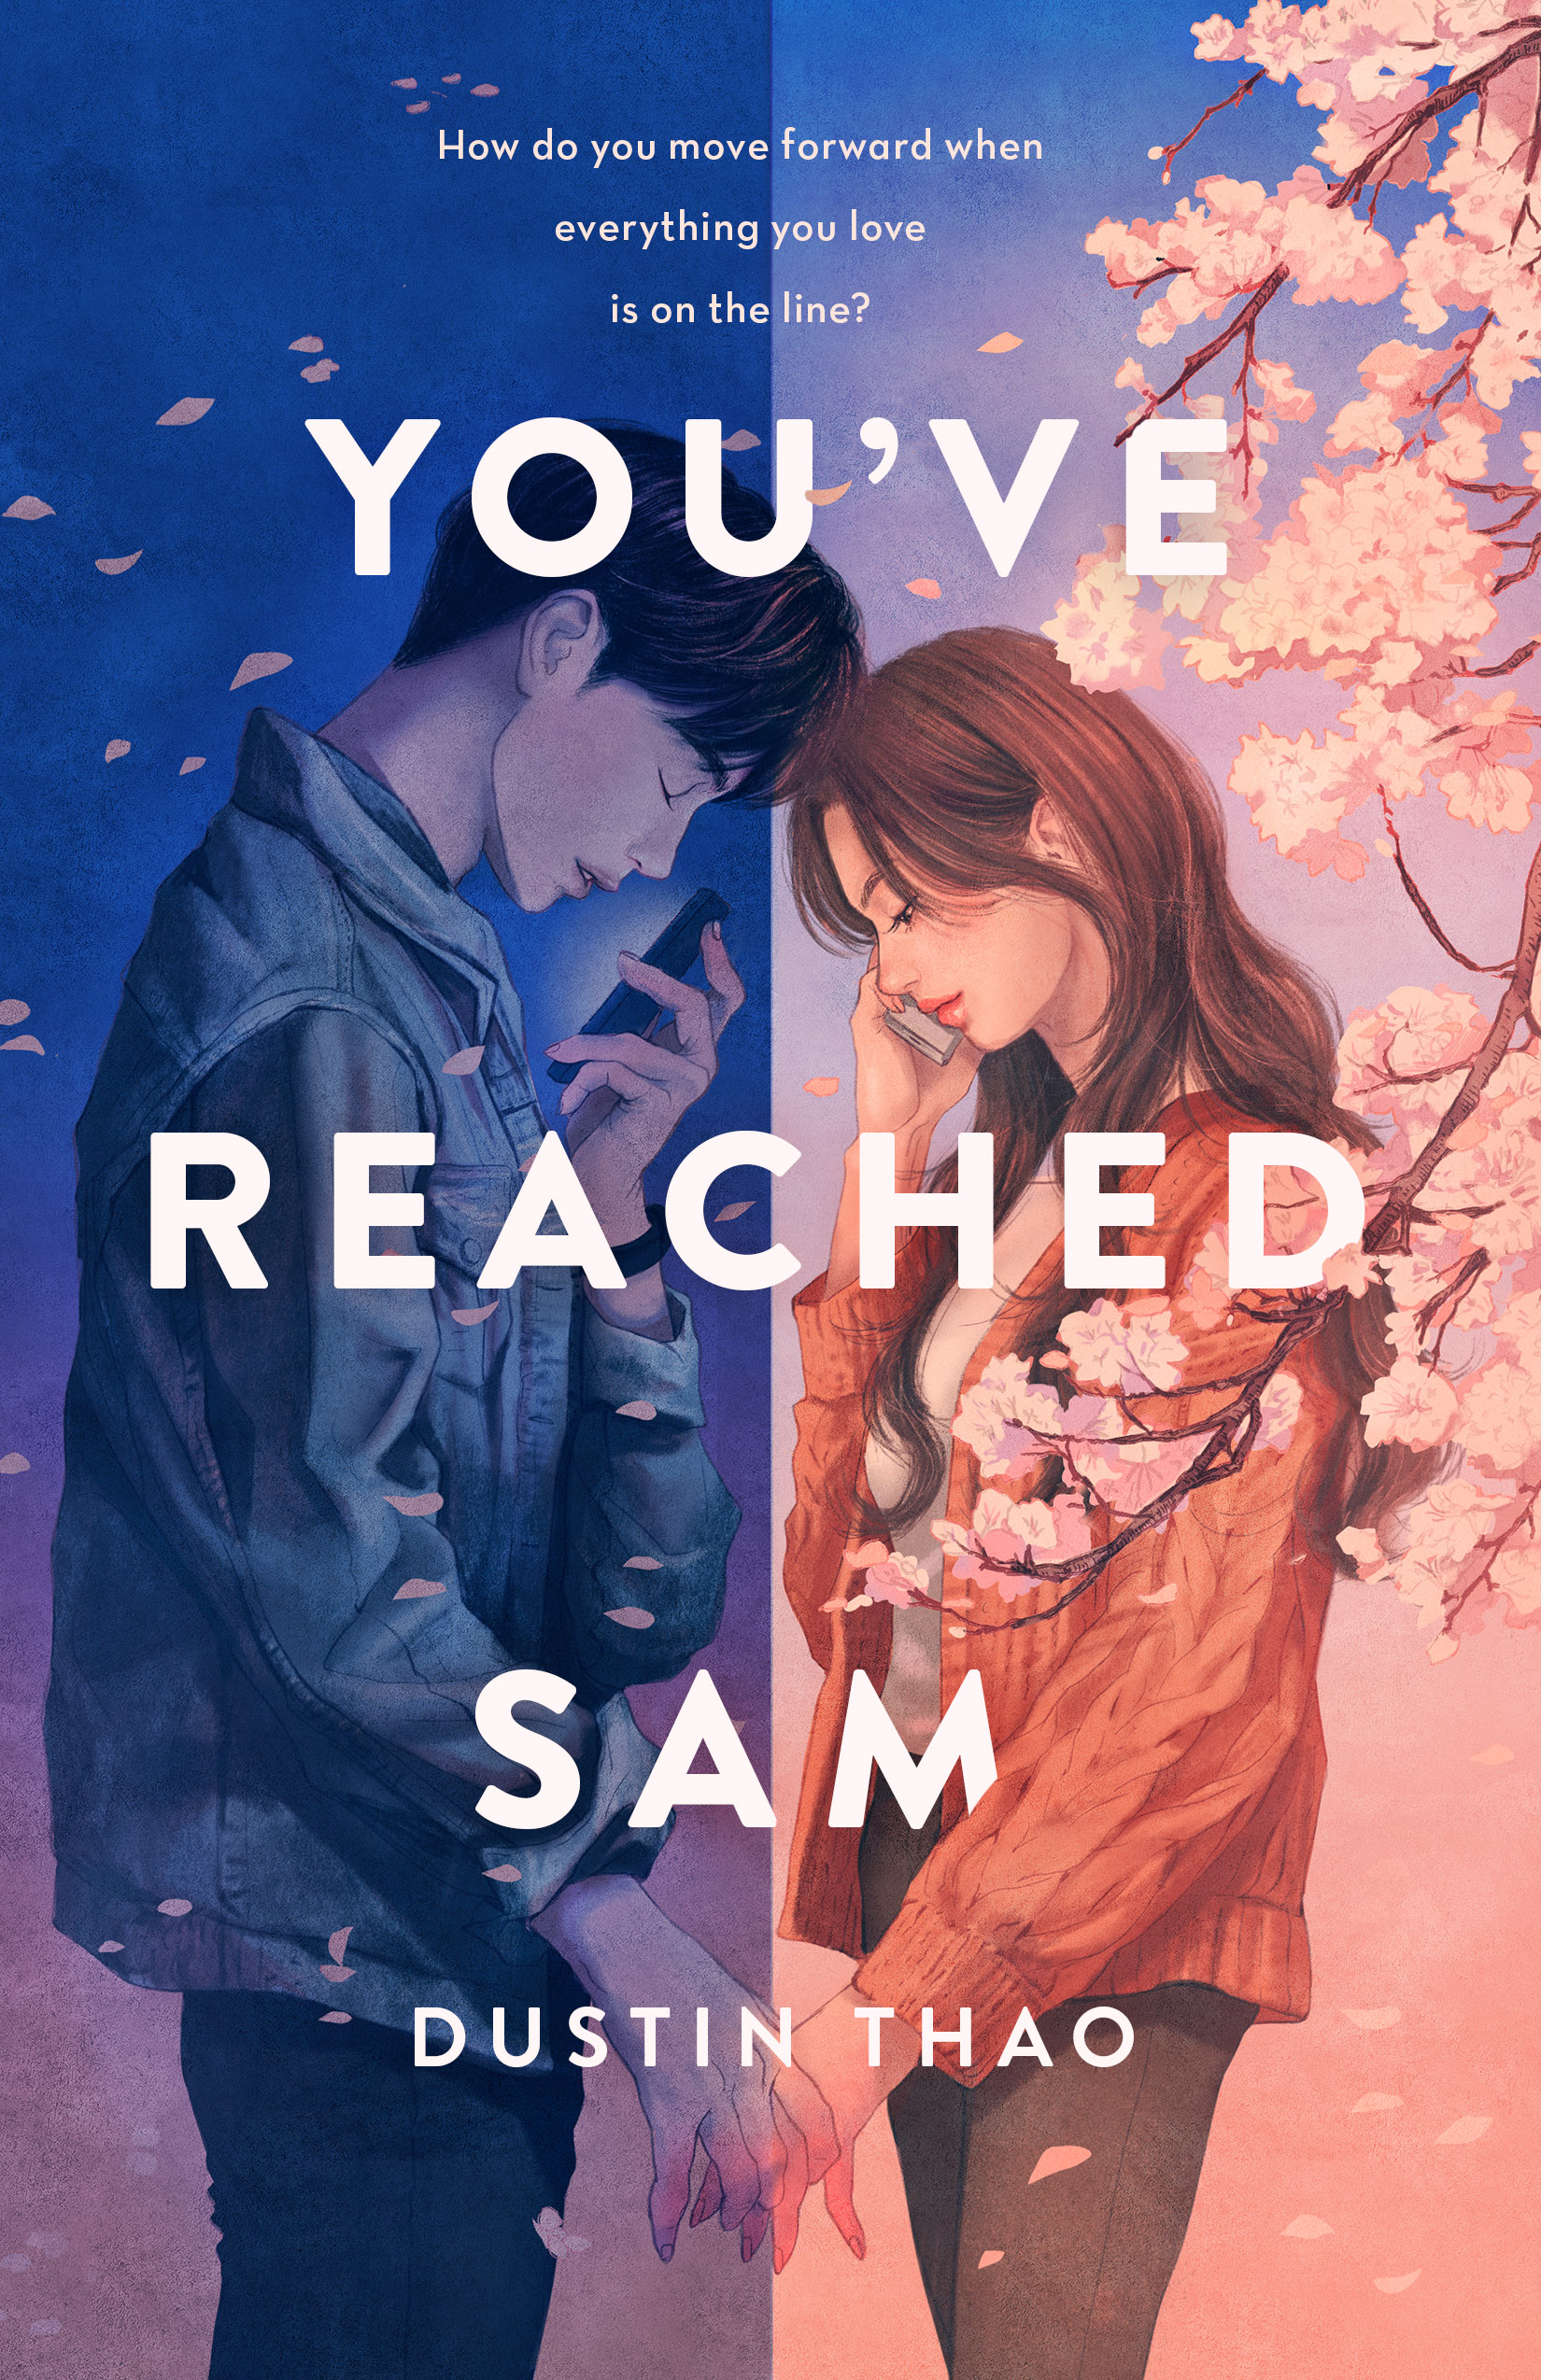 Book Review: You've Reached Sam by Dustin Thao